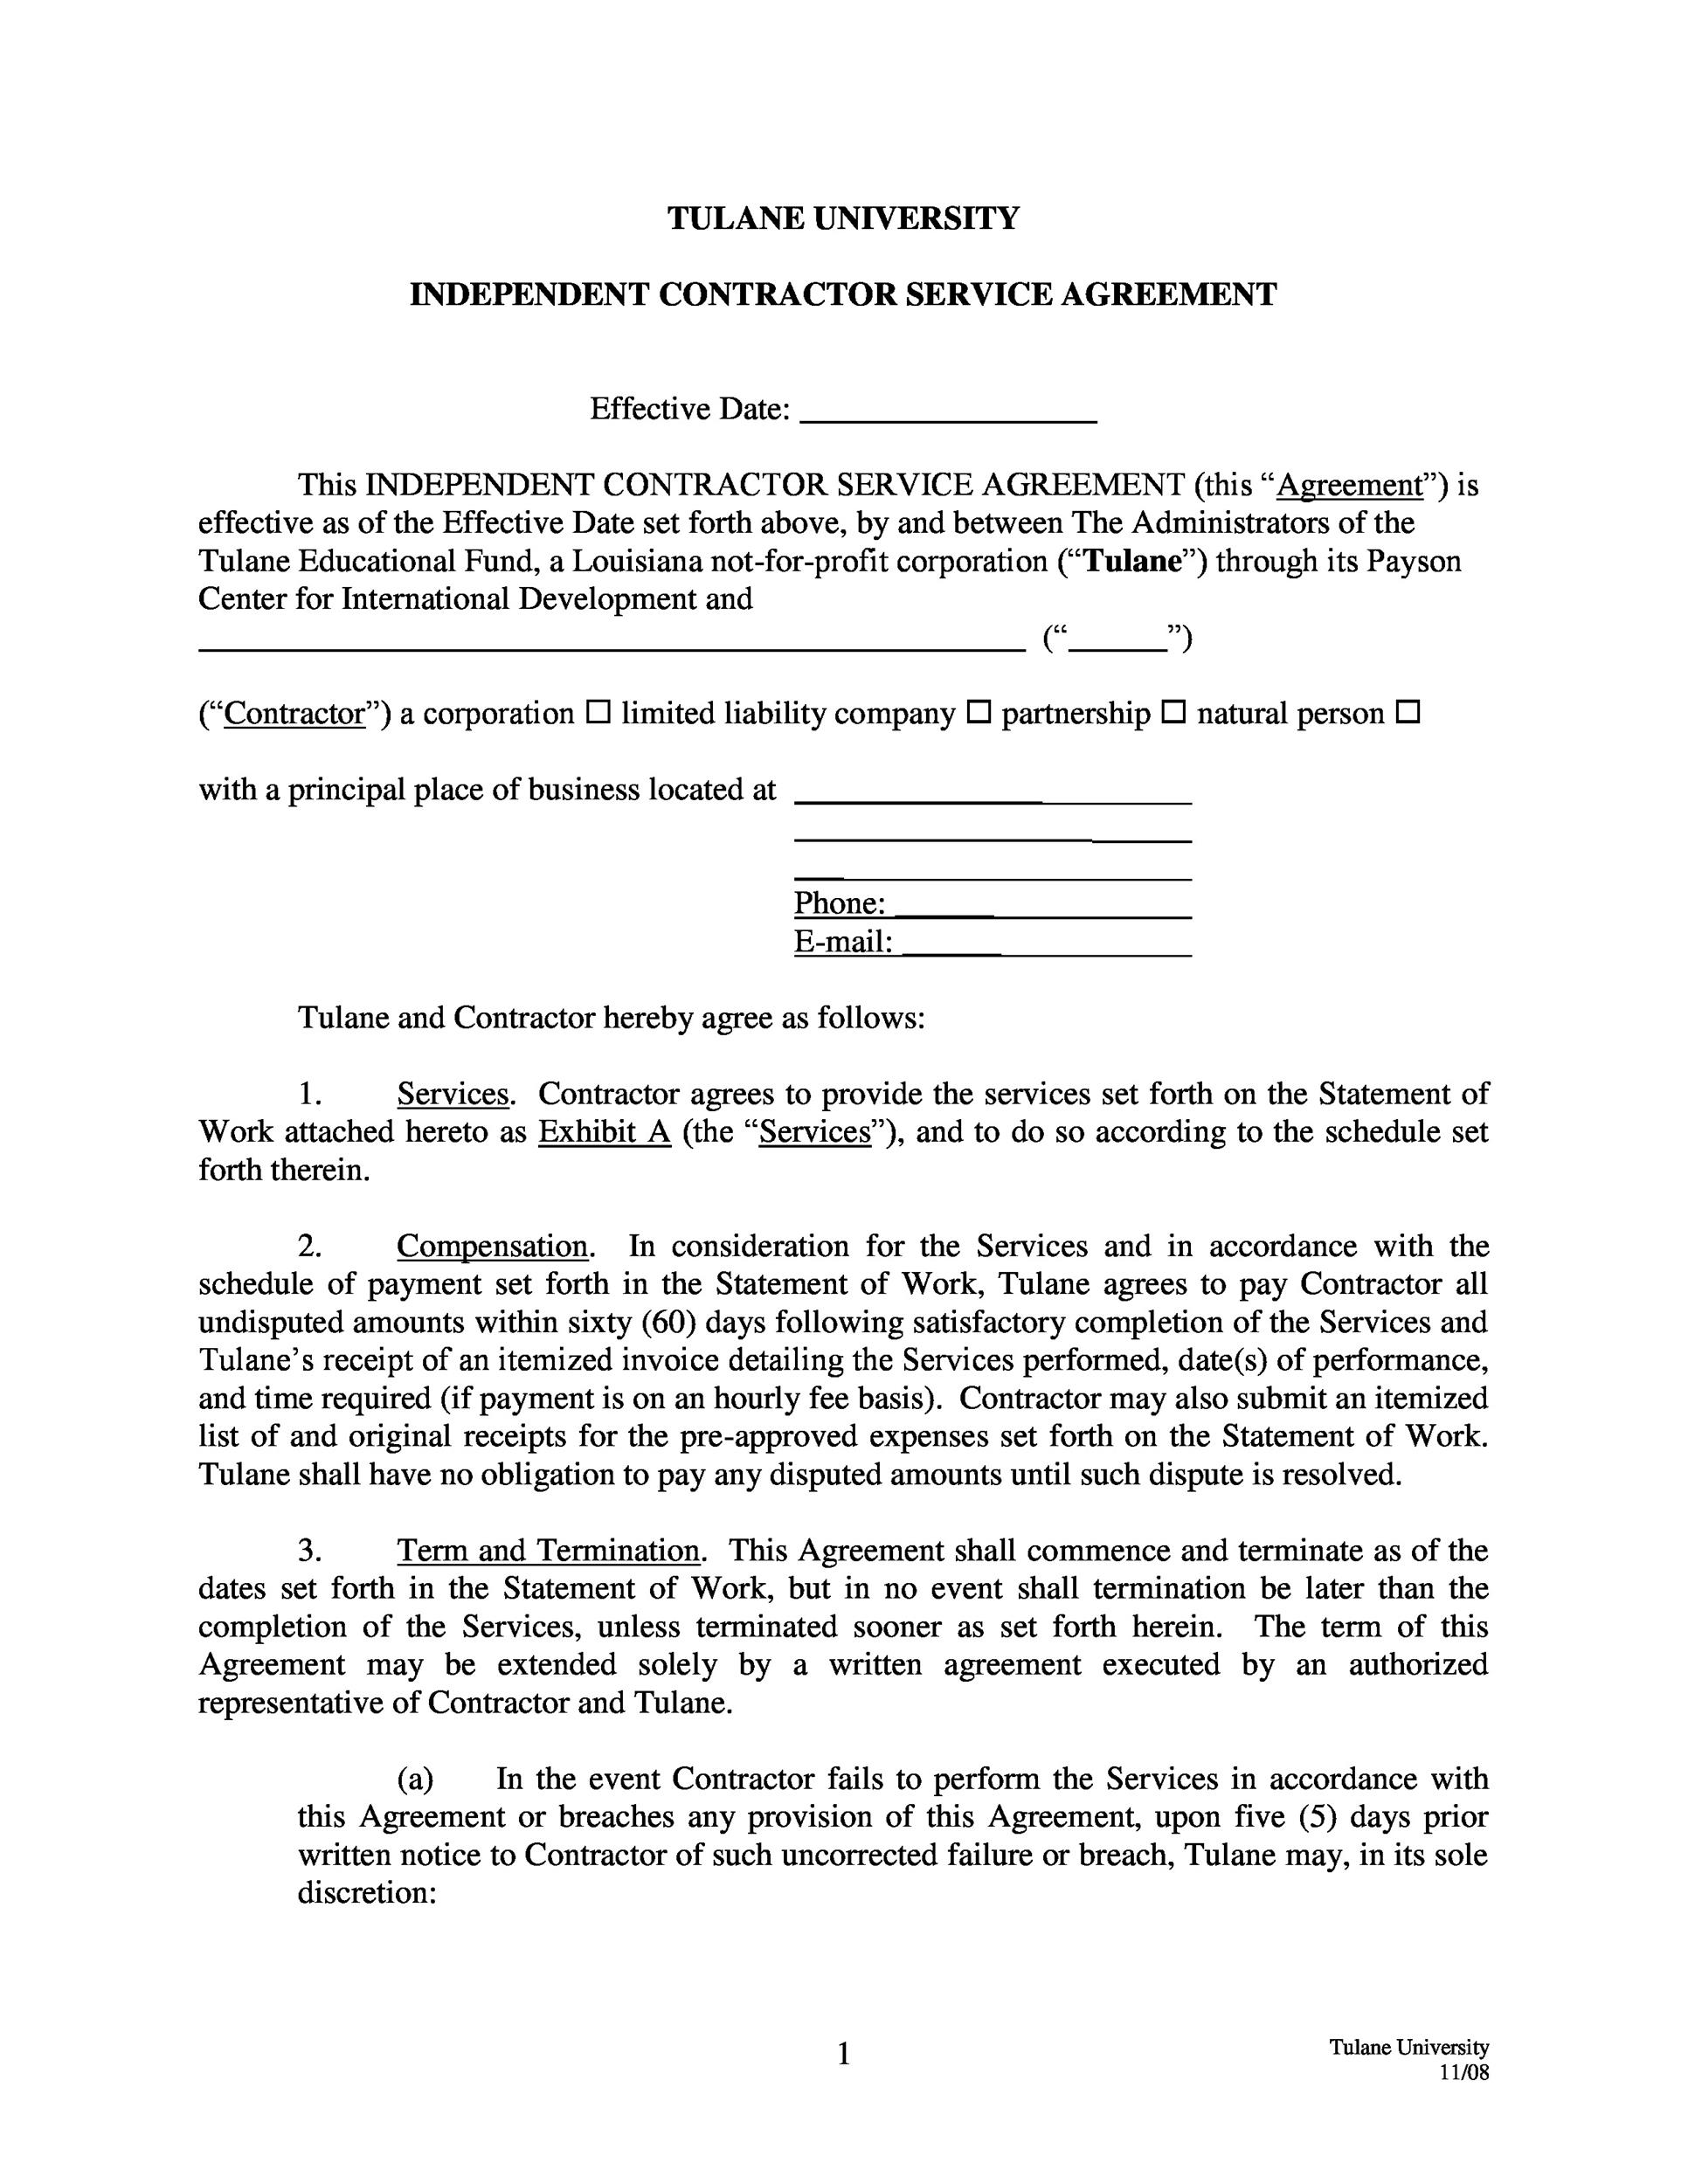 independent contractor agreement 15 Top Result 20 Best Of Contract Agreement Letter Pic 2017 Hdj5